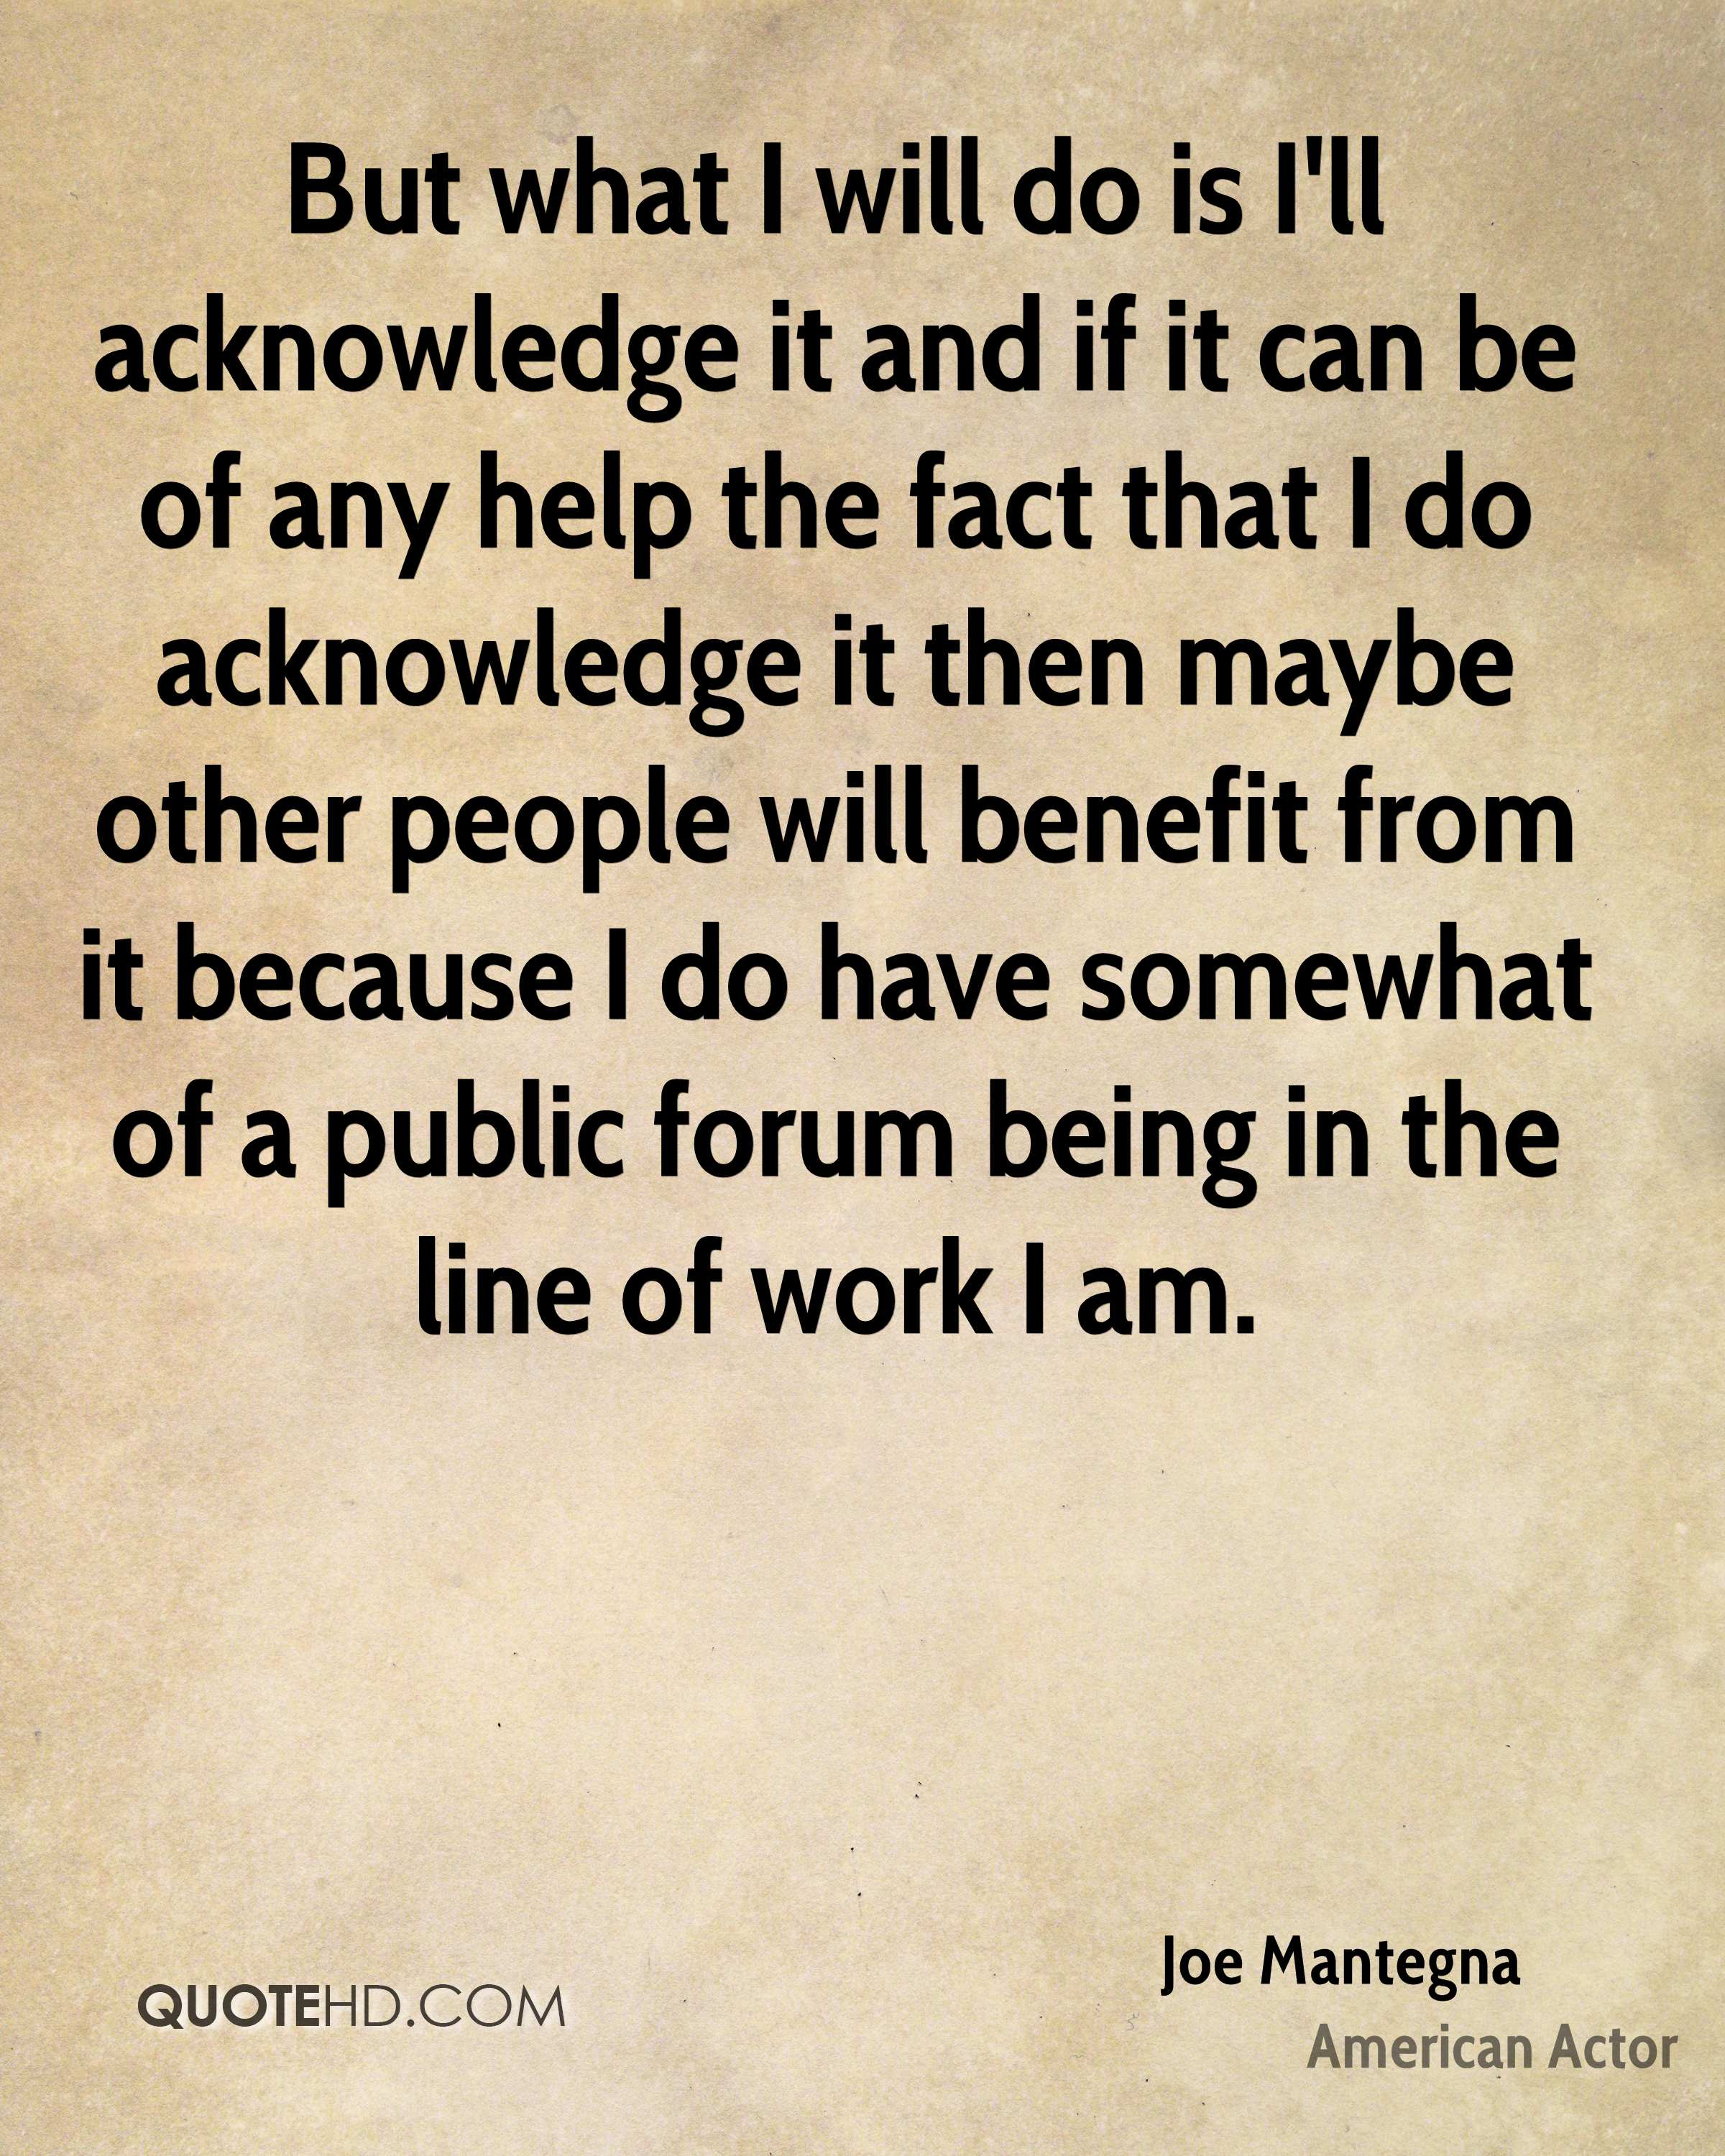 But what I will do is I'll acknowledge it and if it can be of any help the fact that I do acknowledge it then maybe other people will benefit from it because I do have somewhat of a public forum being in the line of work I am.